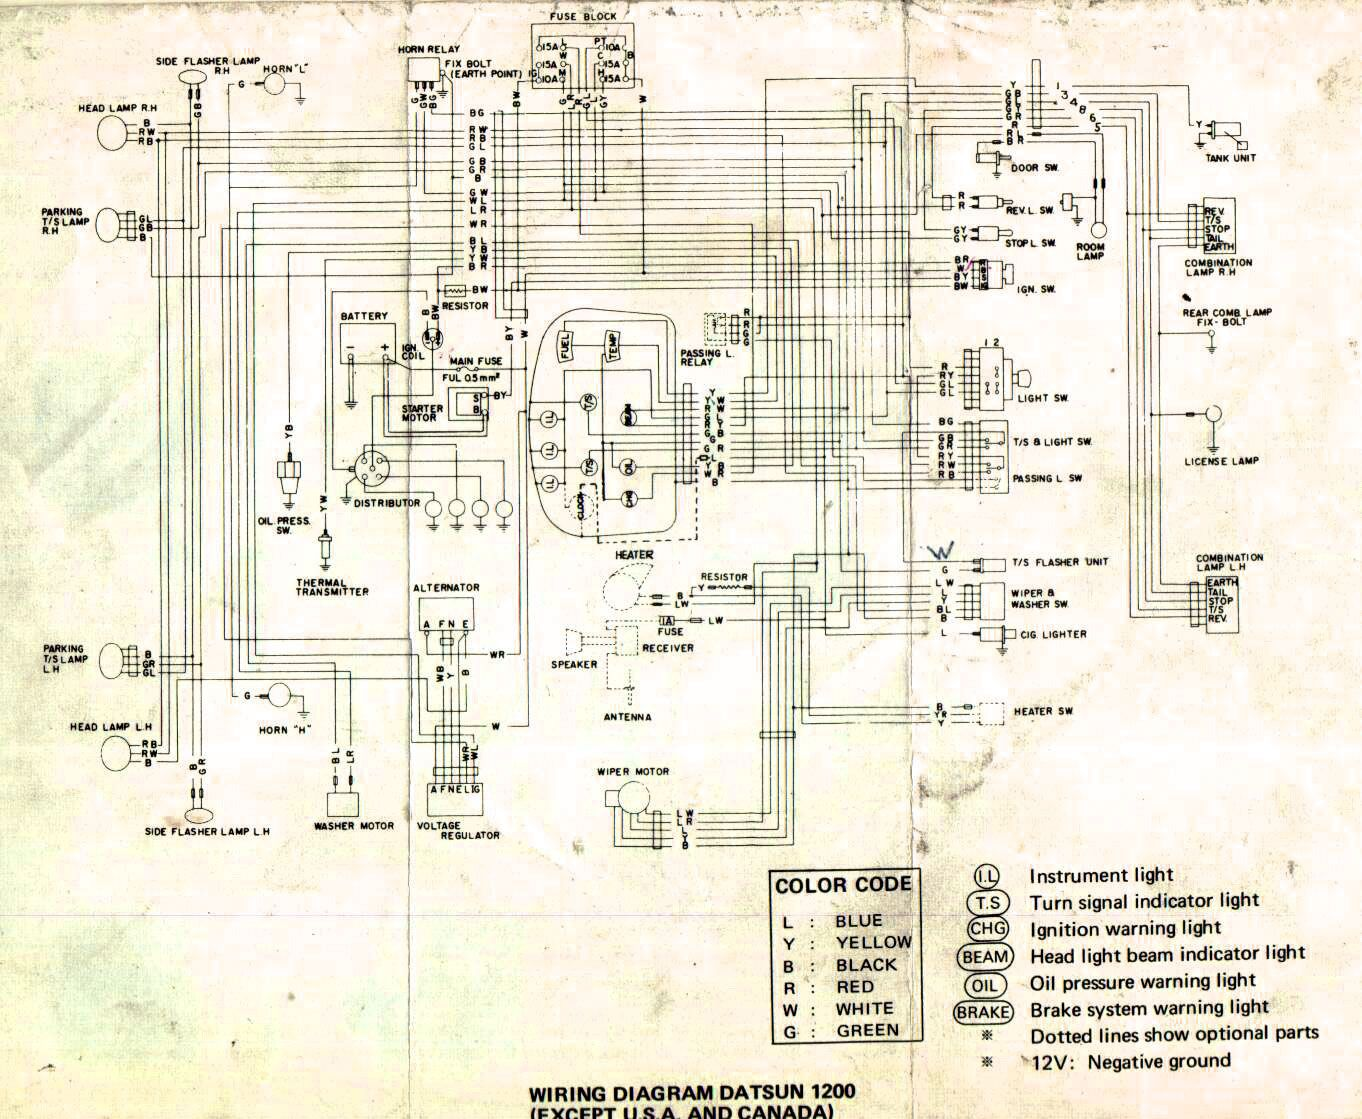 5f8debaef357497a71c98e8f31e42744 wiring diagram for nissan 1400 bakkie 7 nissan pinterest nissan  at crackthecode.co